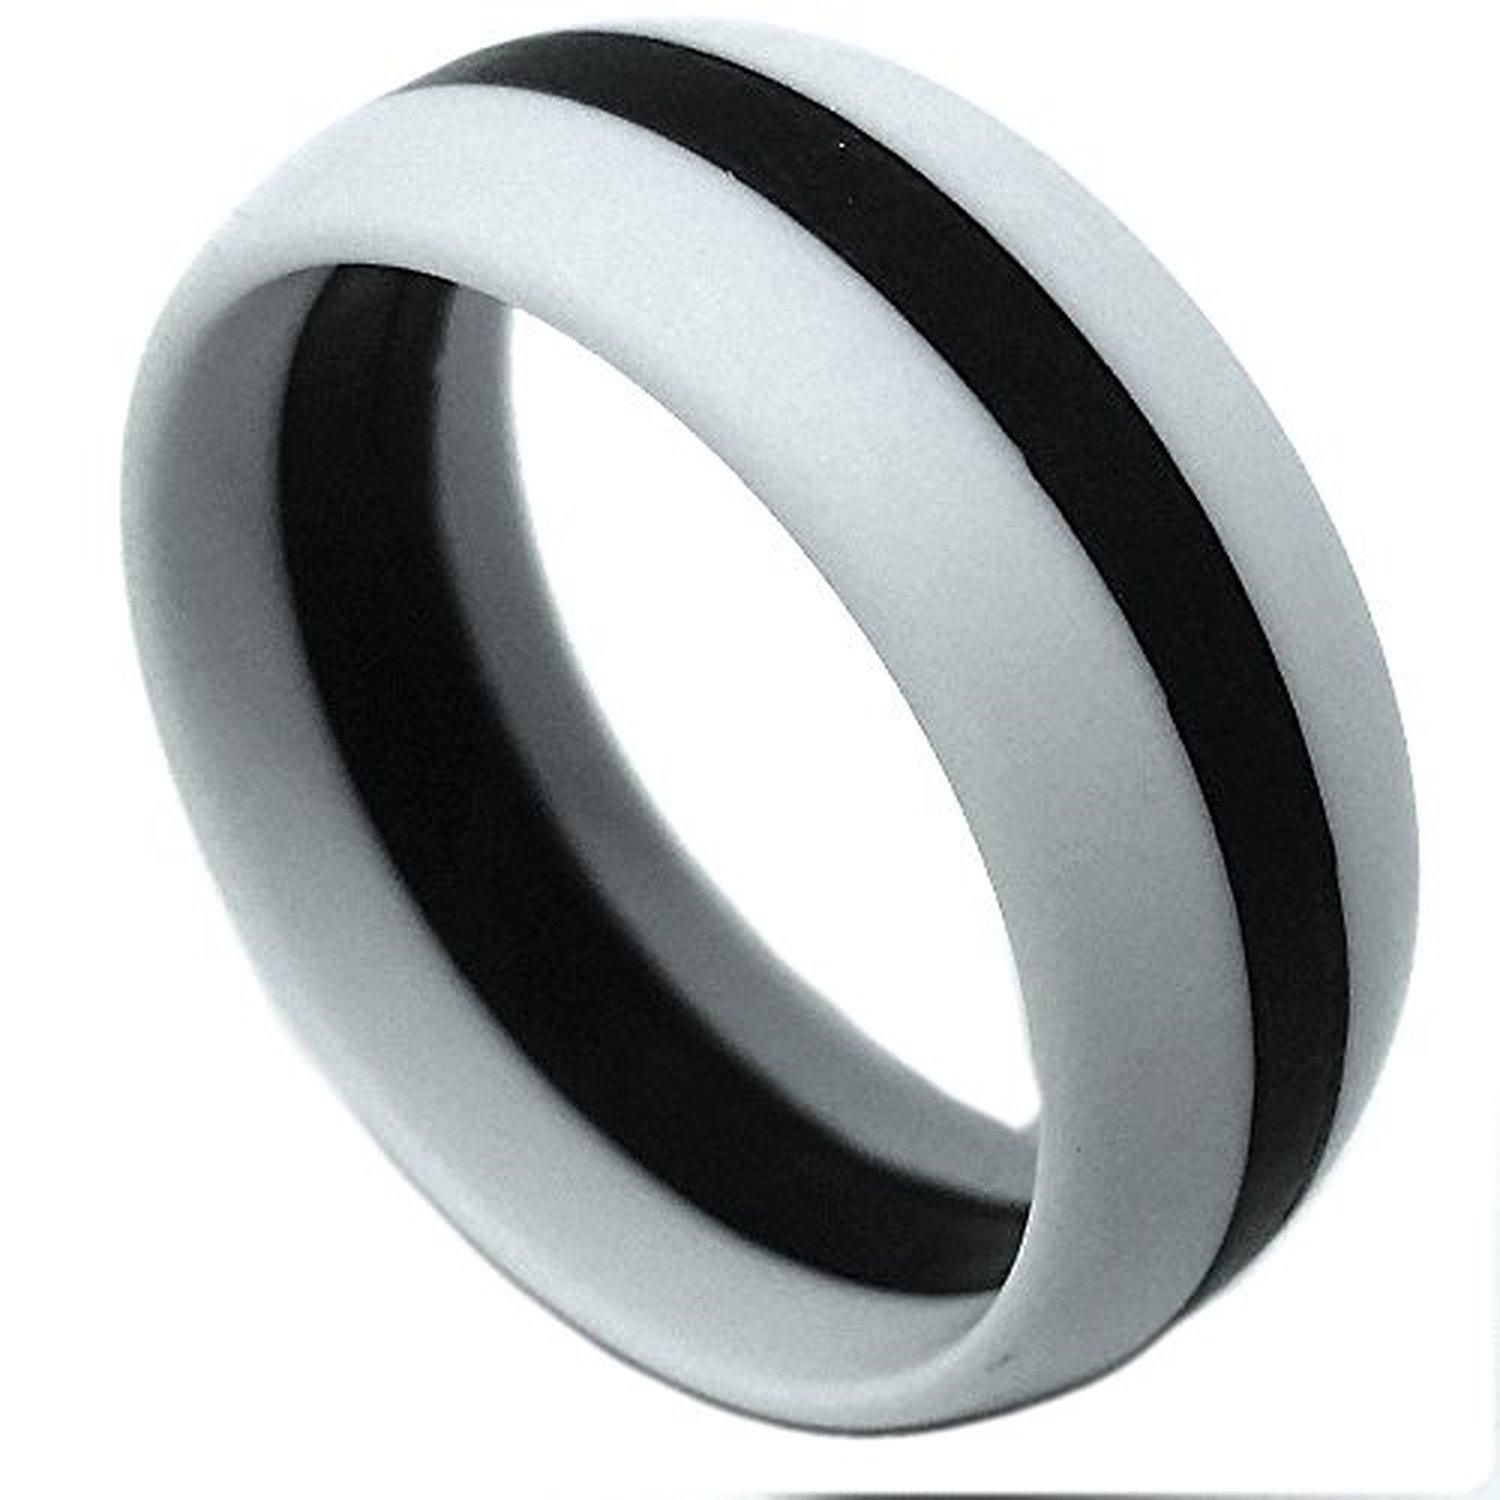 SAR SAFE ACTIVE RINGS 8MM Men or Ladies Flexible Gray Silicon